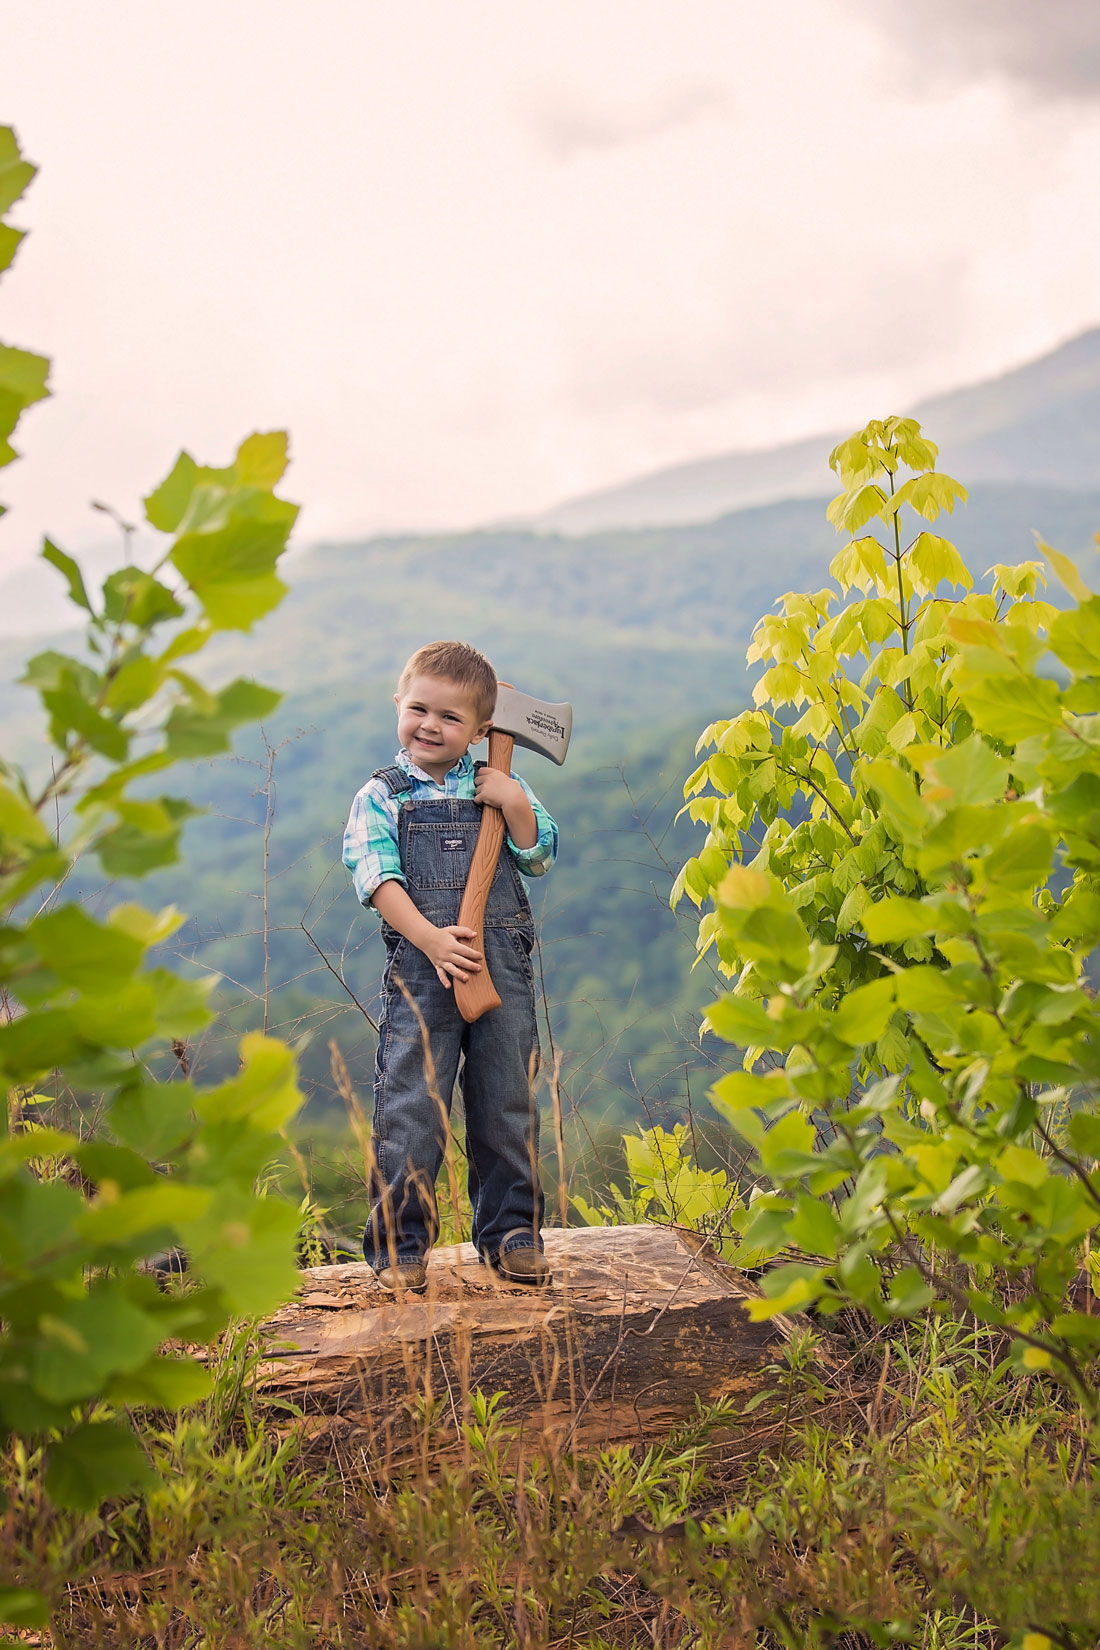 child-lumberjack-smoky-mountain-gatlinburg-photographer.jpg